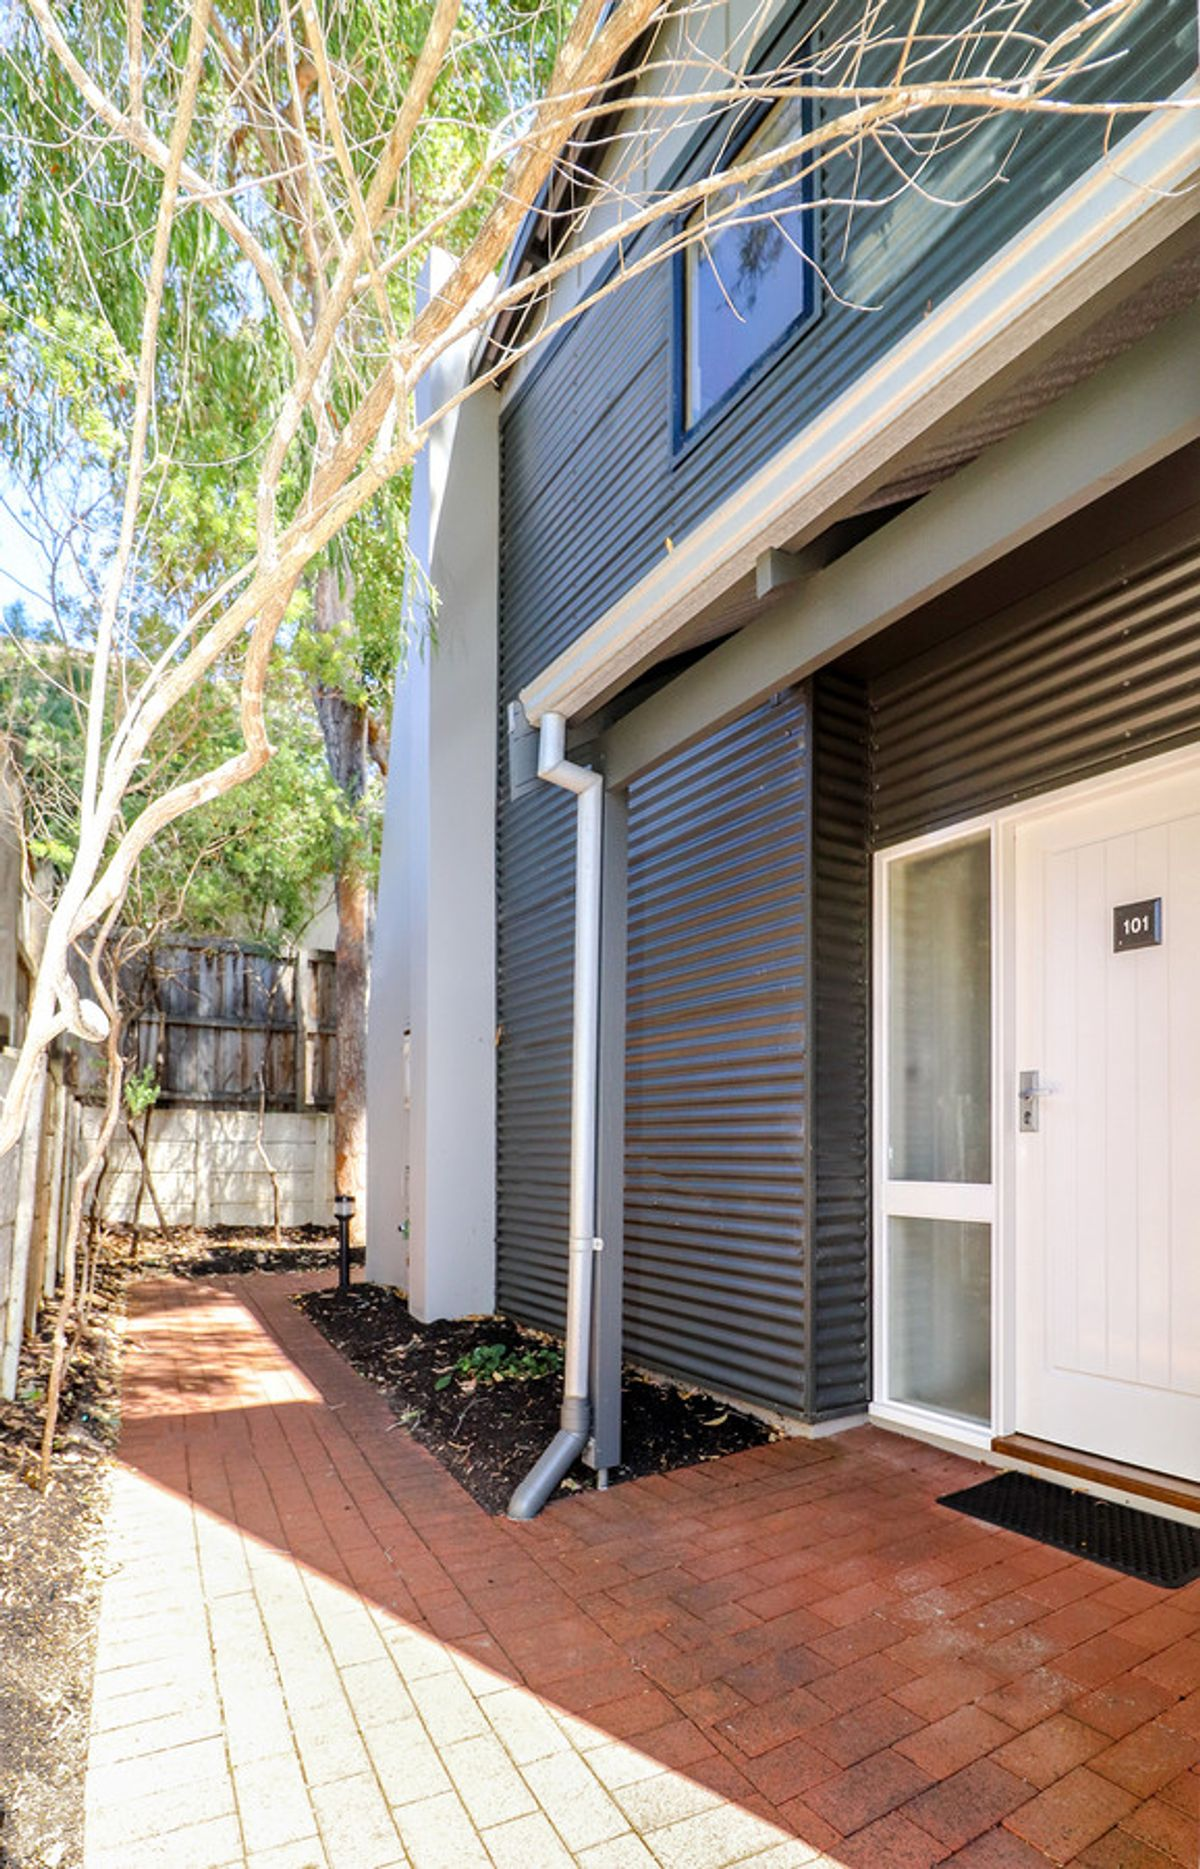 101/96 Bussell Highway, Margaret River, WA 6285